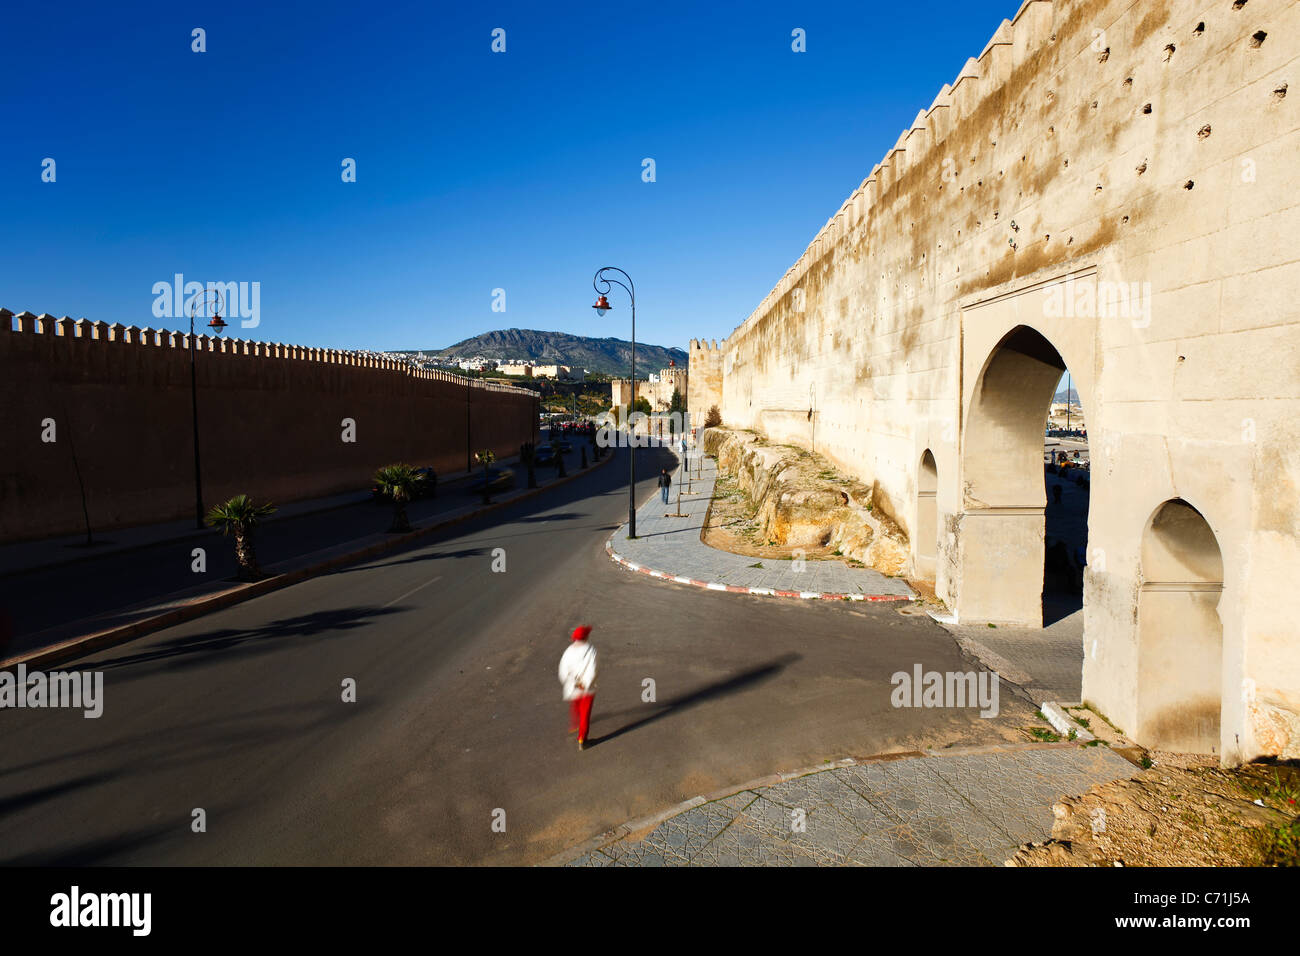 Medieval ramparts of the Old City, Fes el bali, Fes, Morocco, North Africa - Stock Image